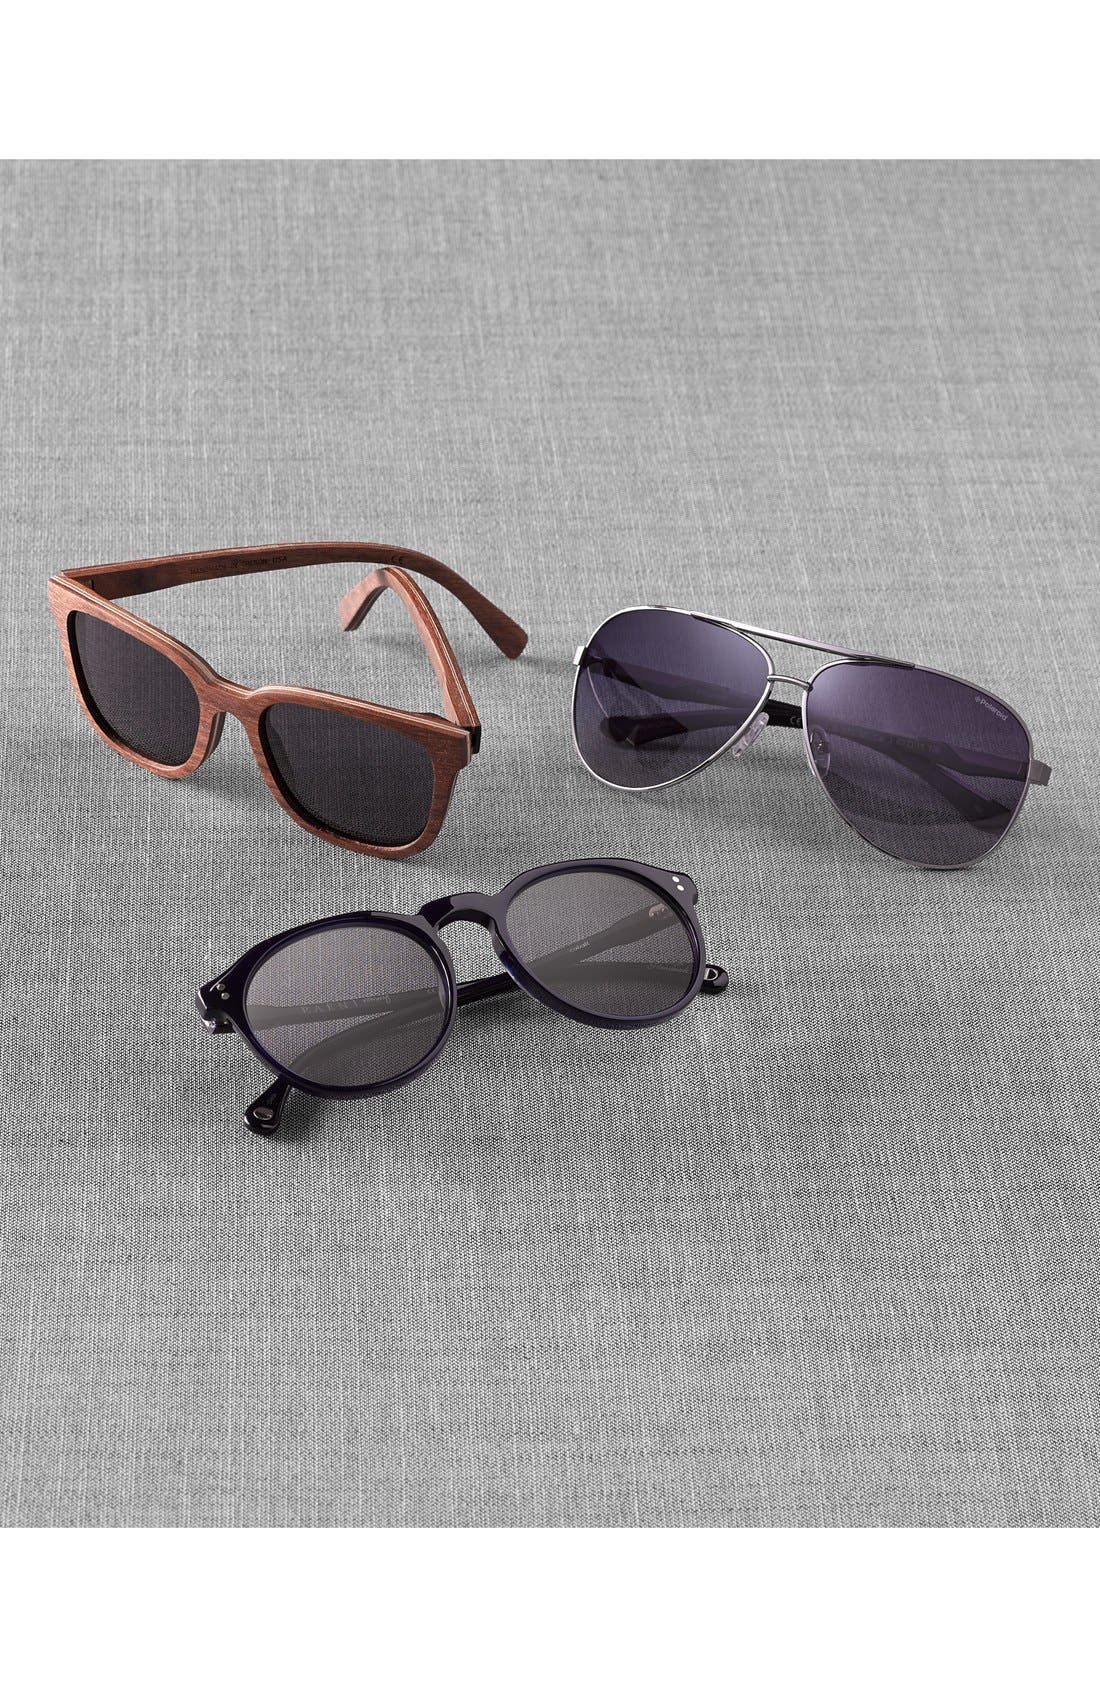 'Remmy' 52mm Sunglasses,                             Alternate thumbnail 2, color,                             003